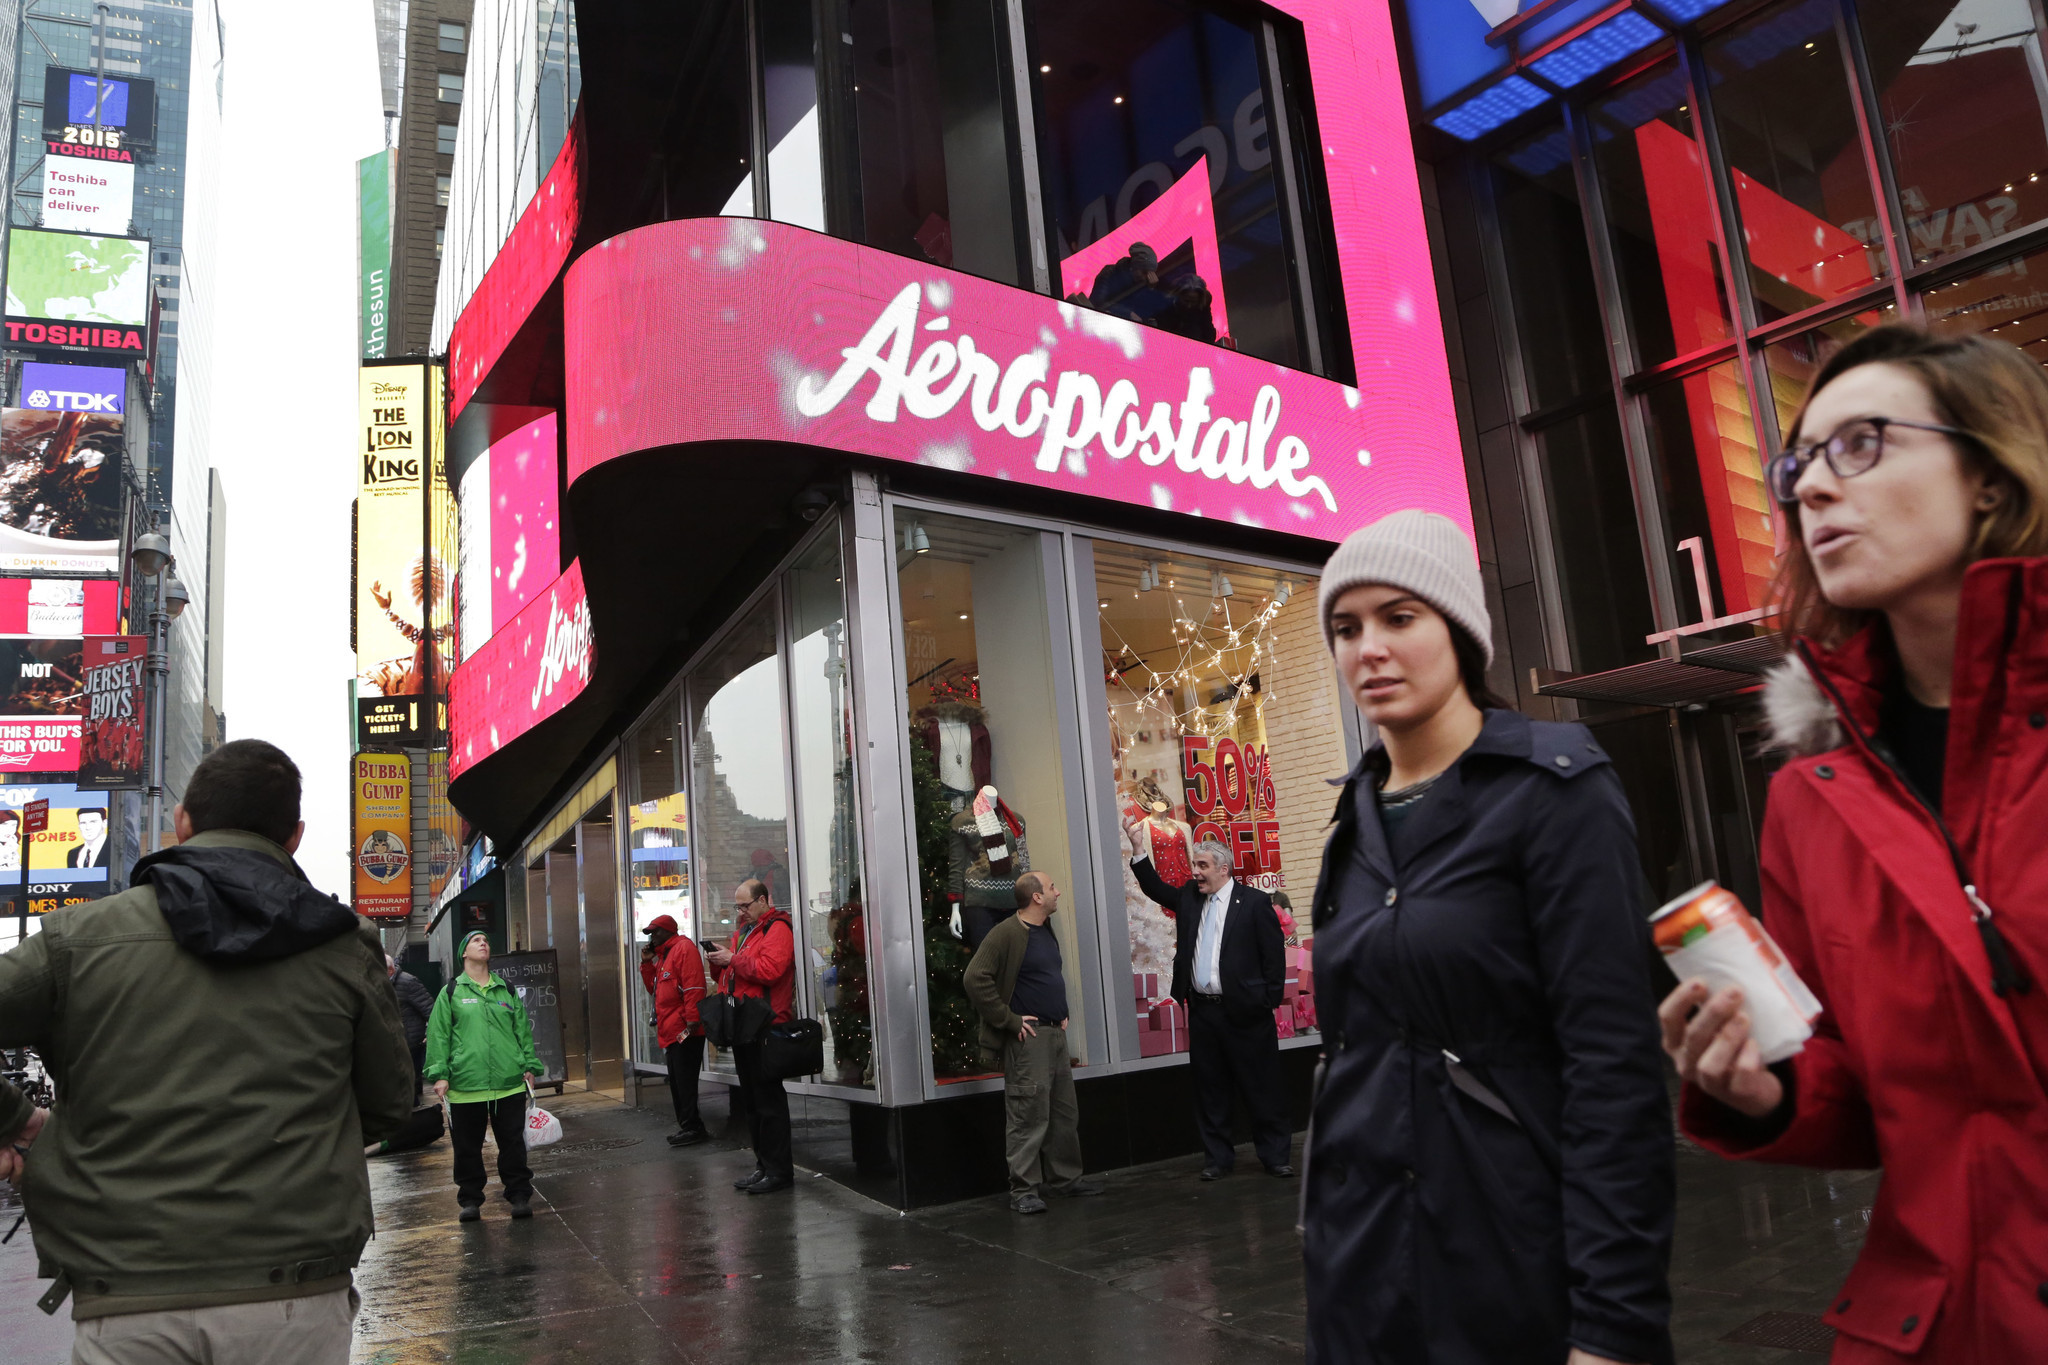 aeropostale files for bankruptcy in latest retailer meltdown